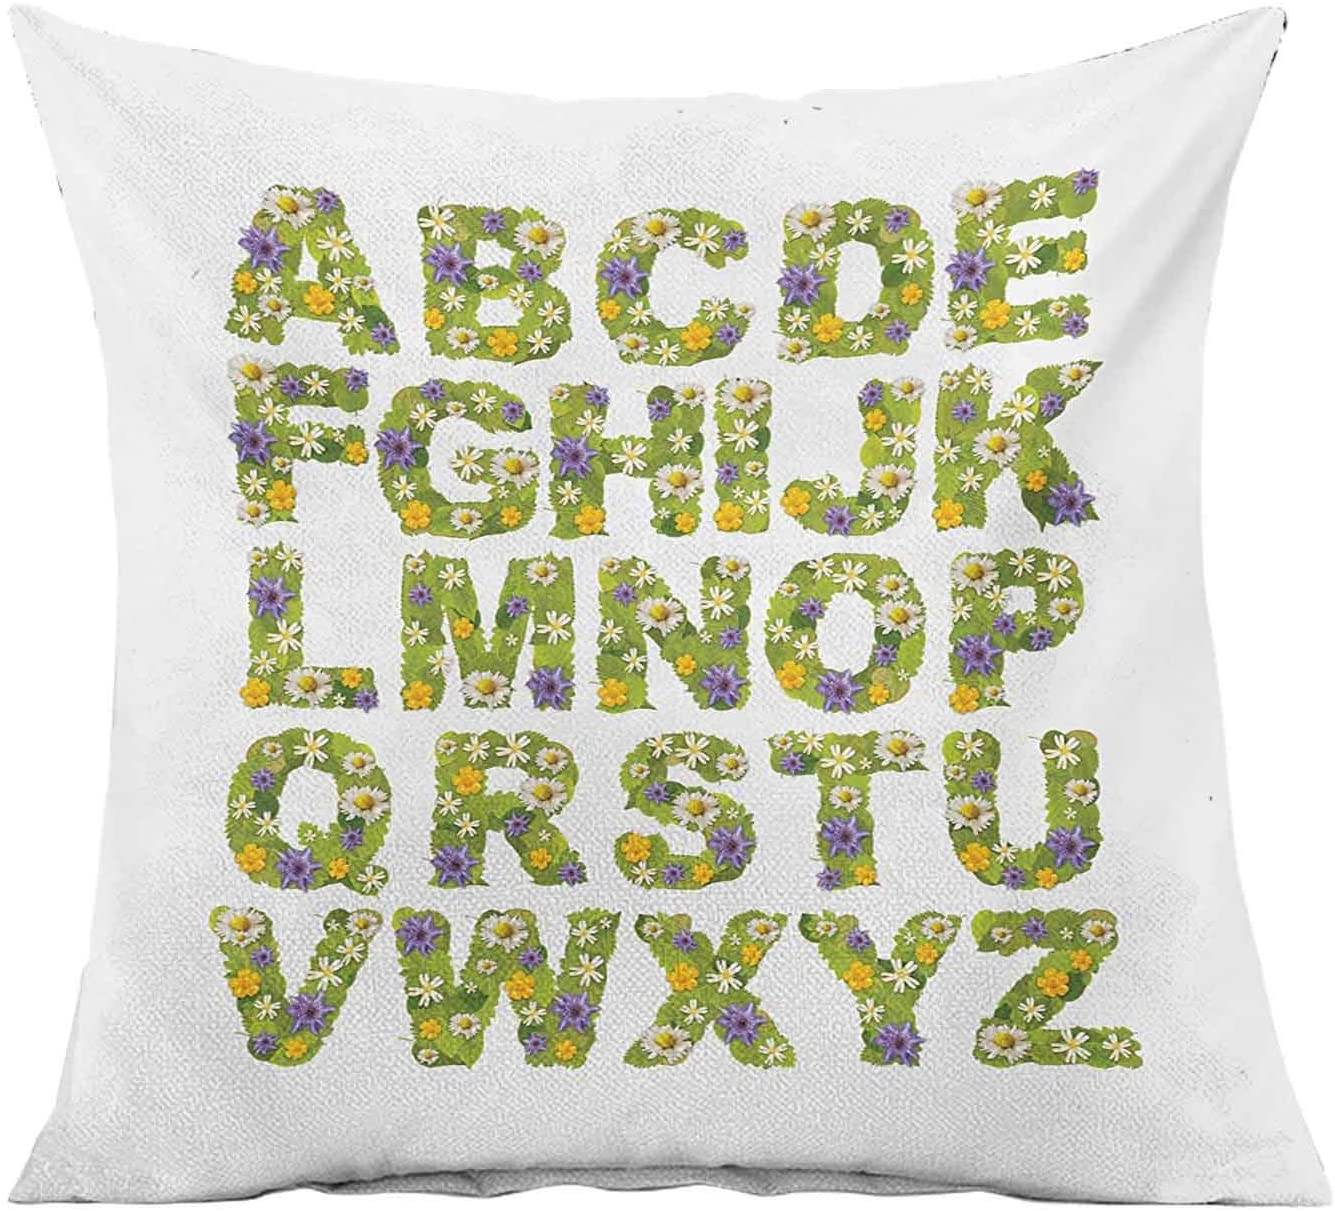 Letters Decorative Throw Pillow Cover,Green Leaves and Flowers Mother Nature Inspired Alphabet Spring Print Pillowcase Cushion Cover for Patio Couch Sofa Home Car Couch,18x18 Inches,